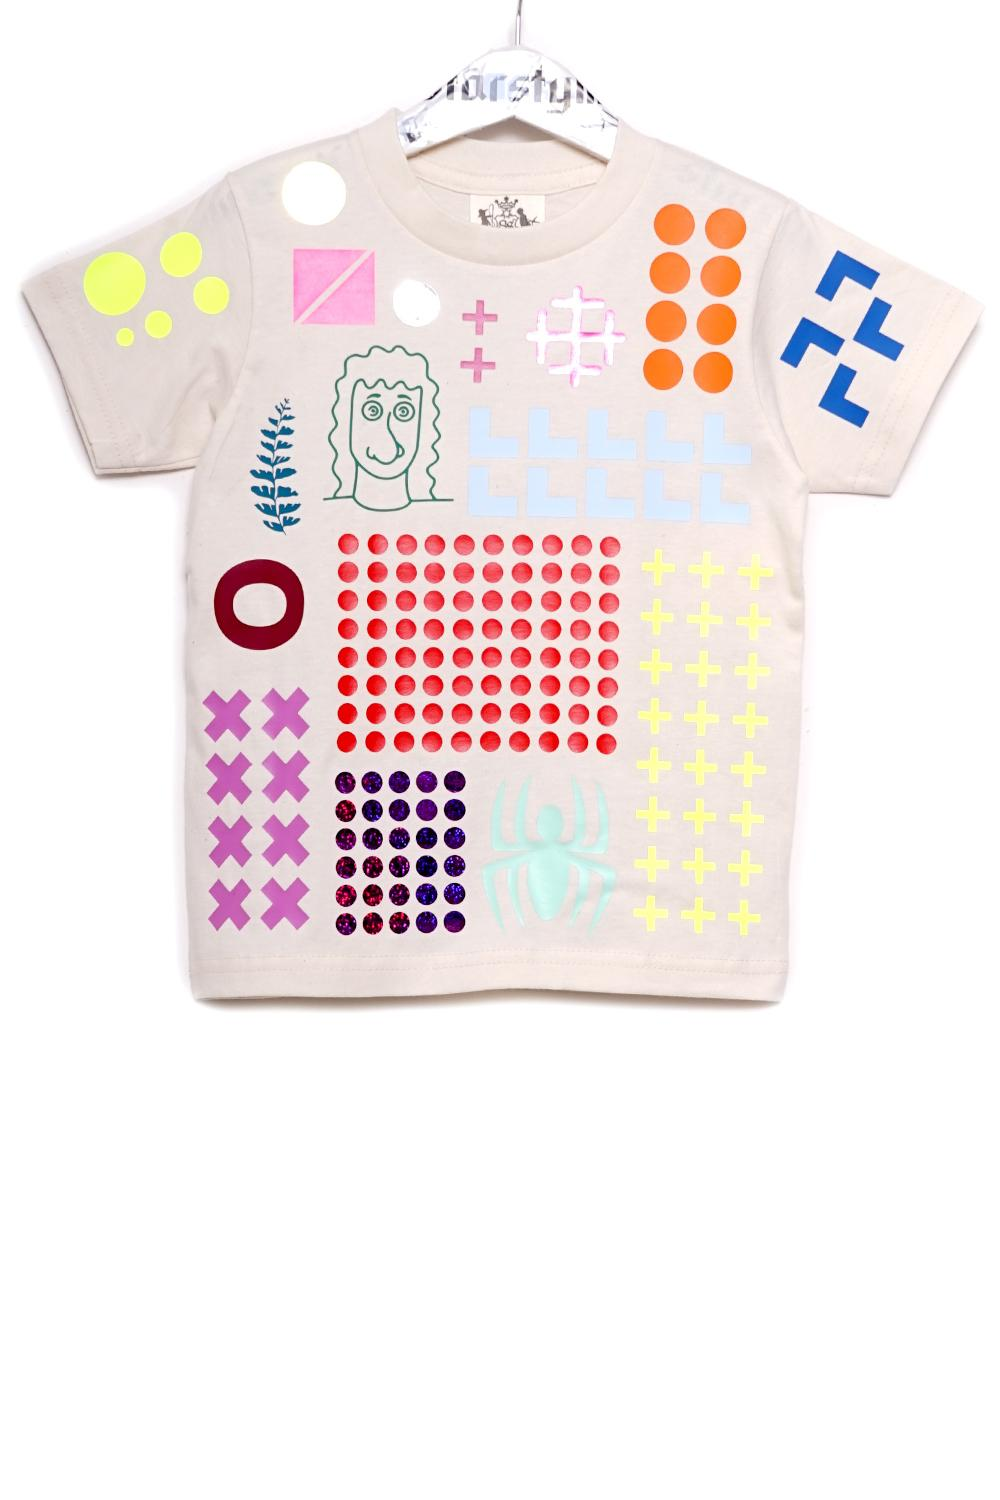 Everything Allover T-Shirt Kids - 1